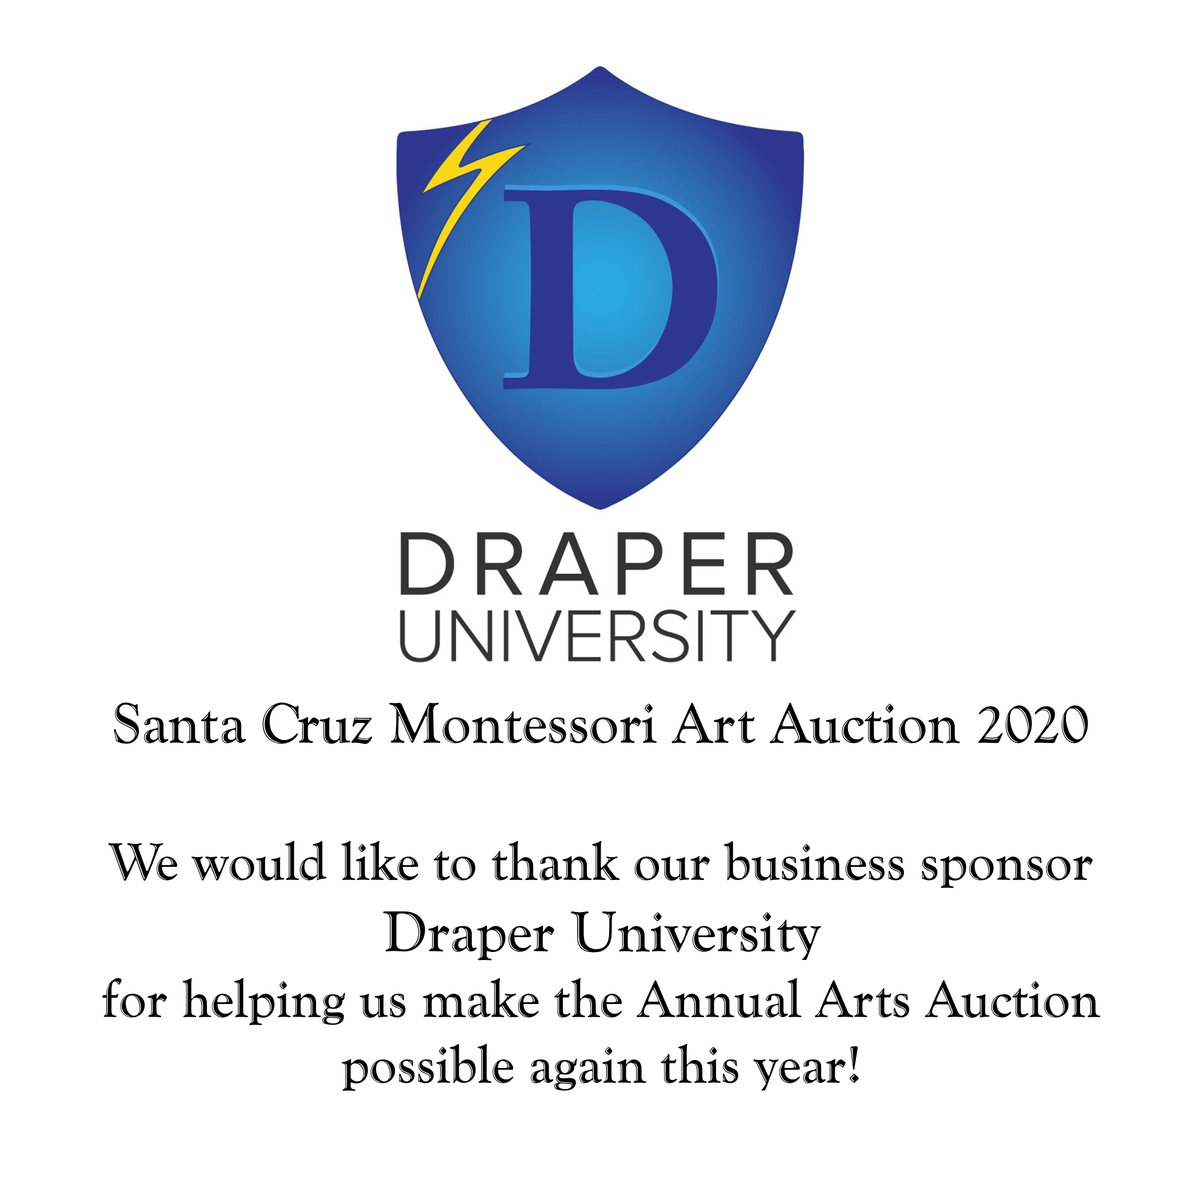 We would like to thank our business sponsor Draper University for supporting the Santa Cruz Montessori Arts Auction 2020. https://buff.ly/2xmj9Gppic.twitter.com/IDWDAJl54v